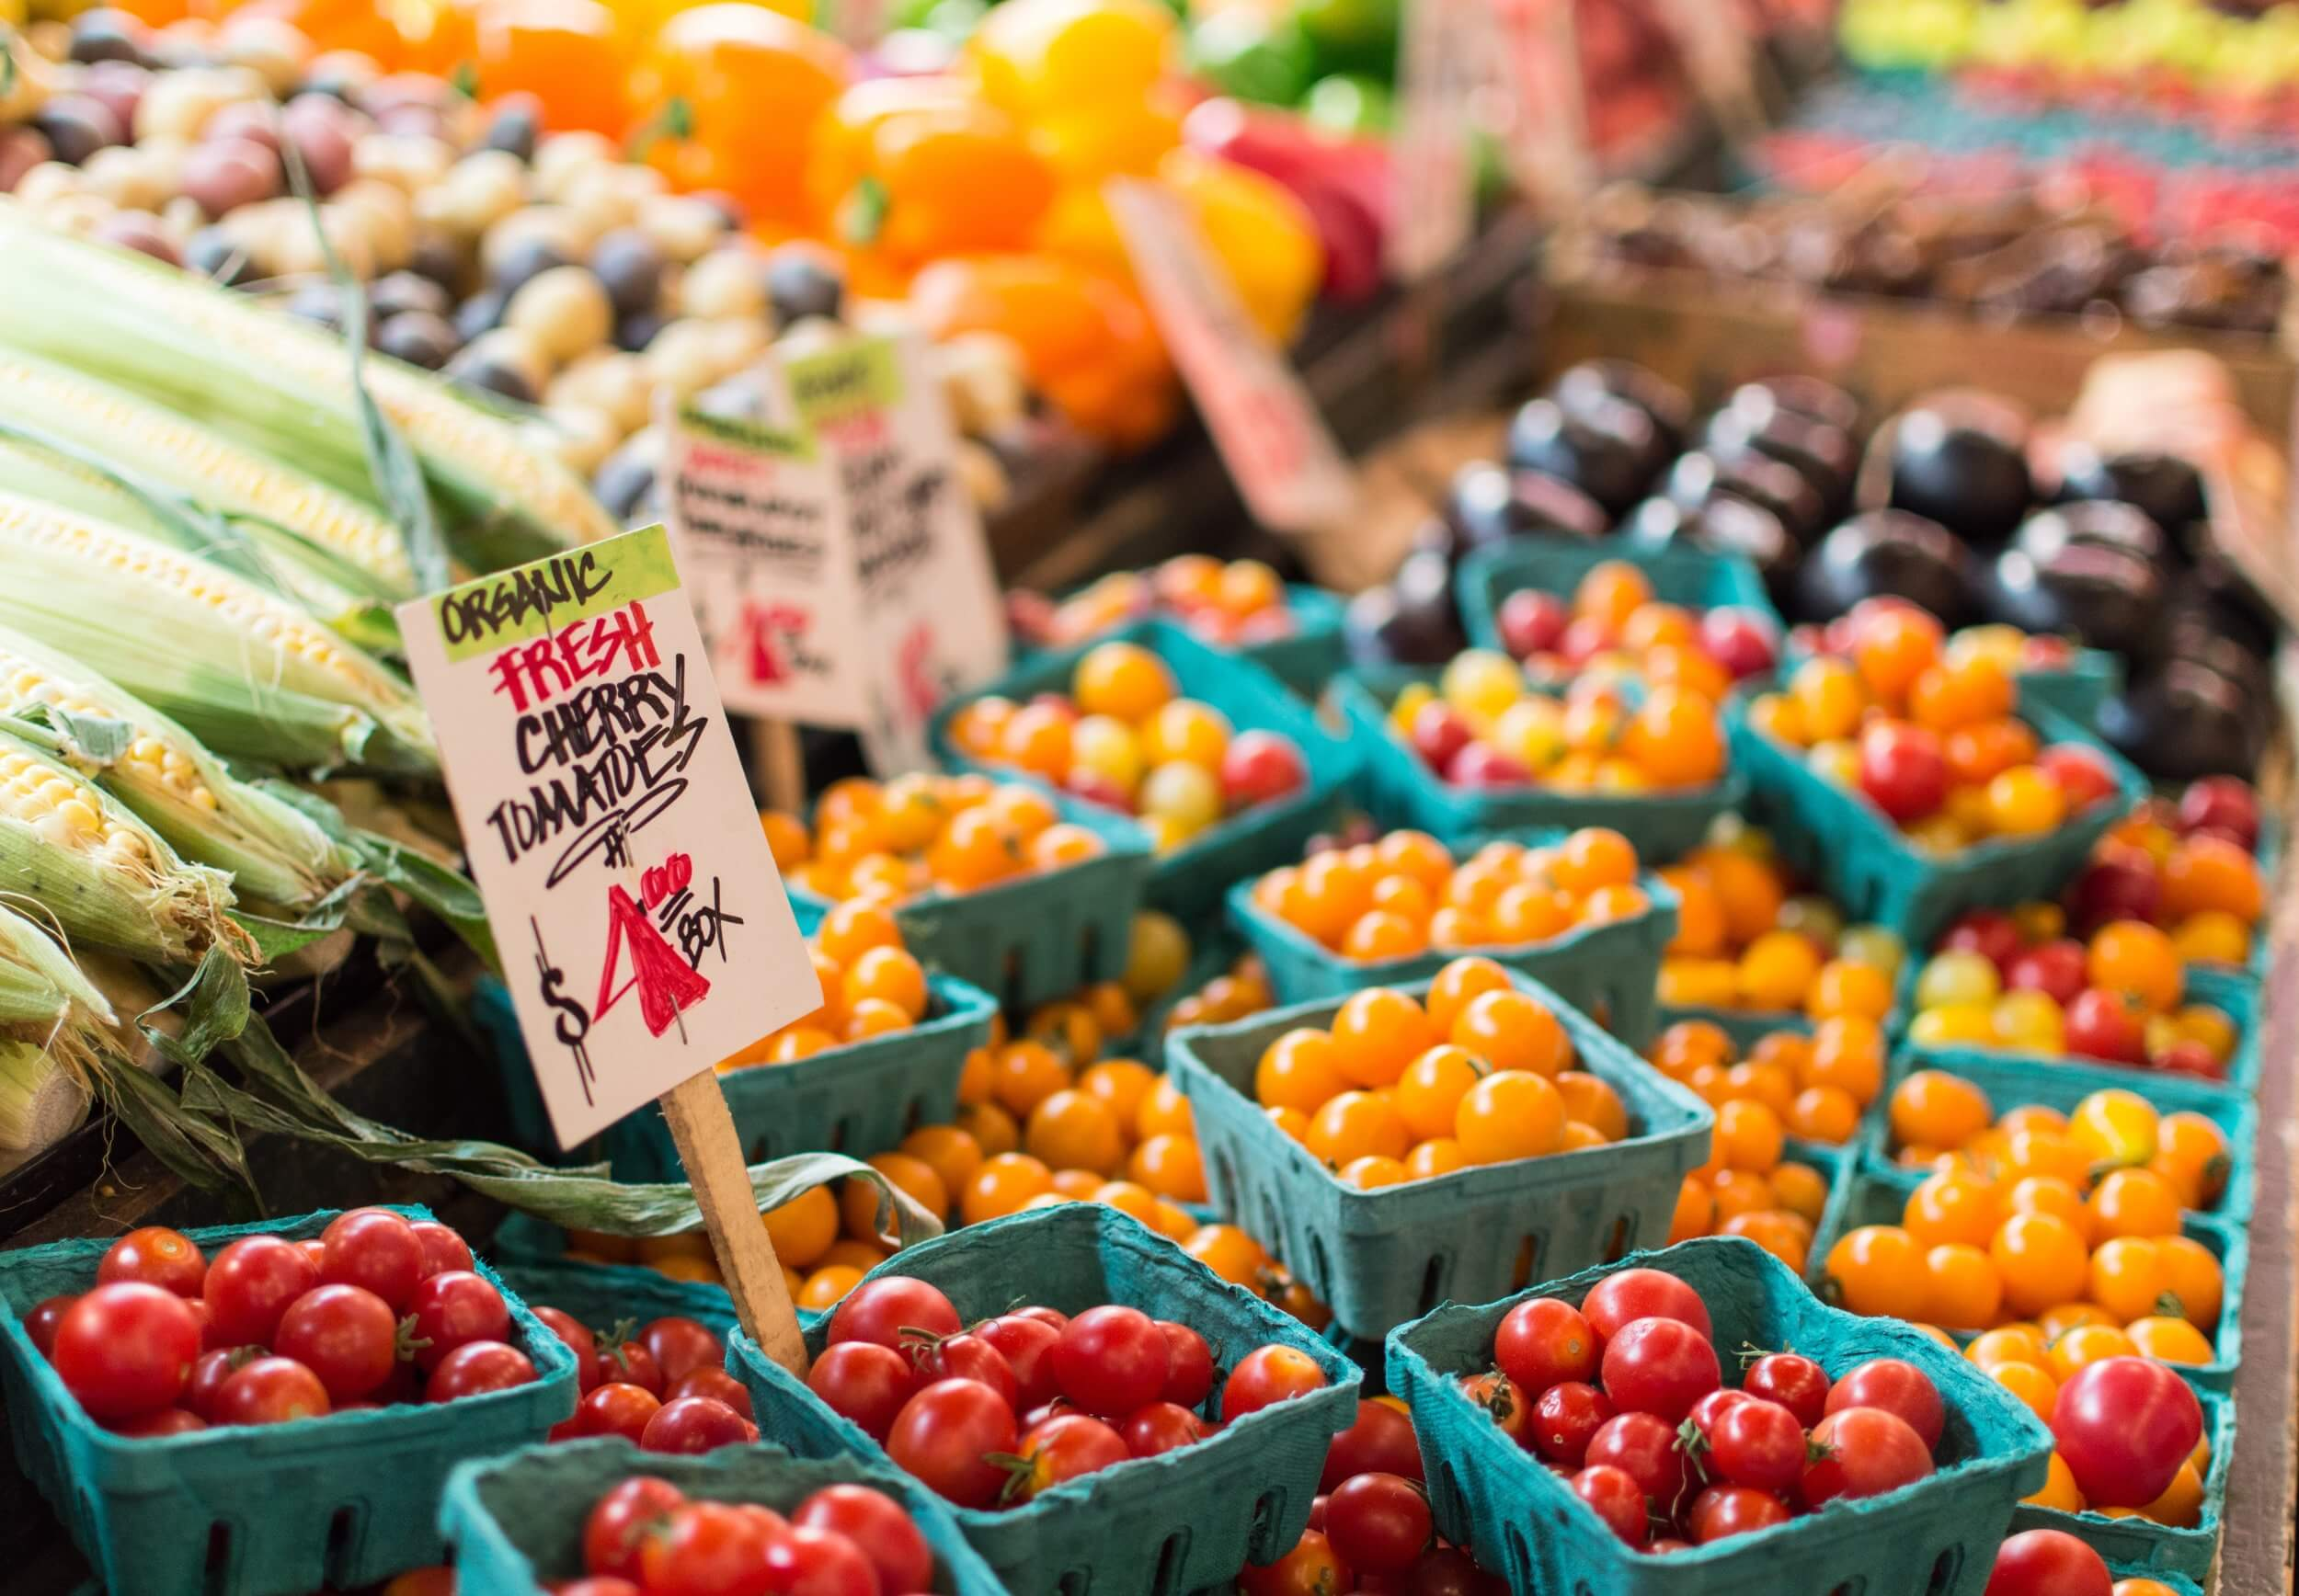 Does Organic Actually Matter? by Chartered Wellness